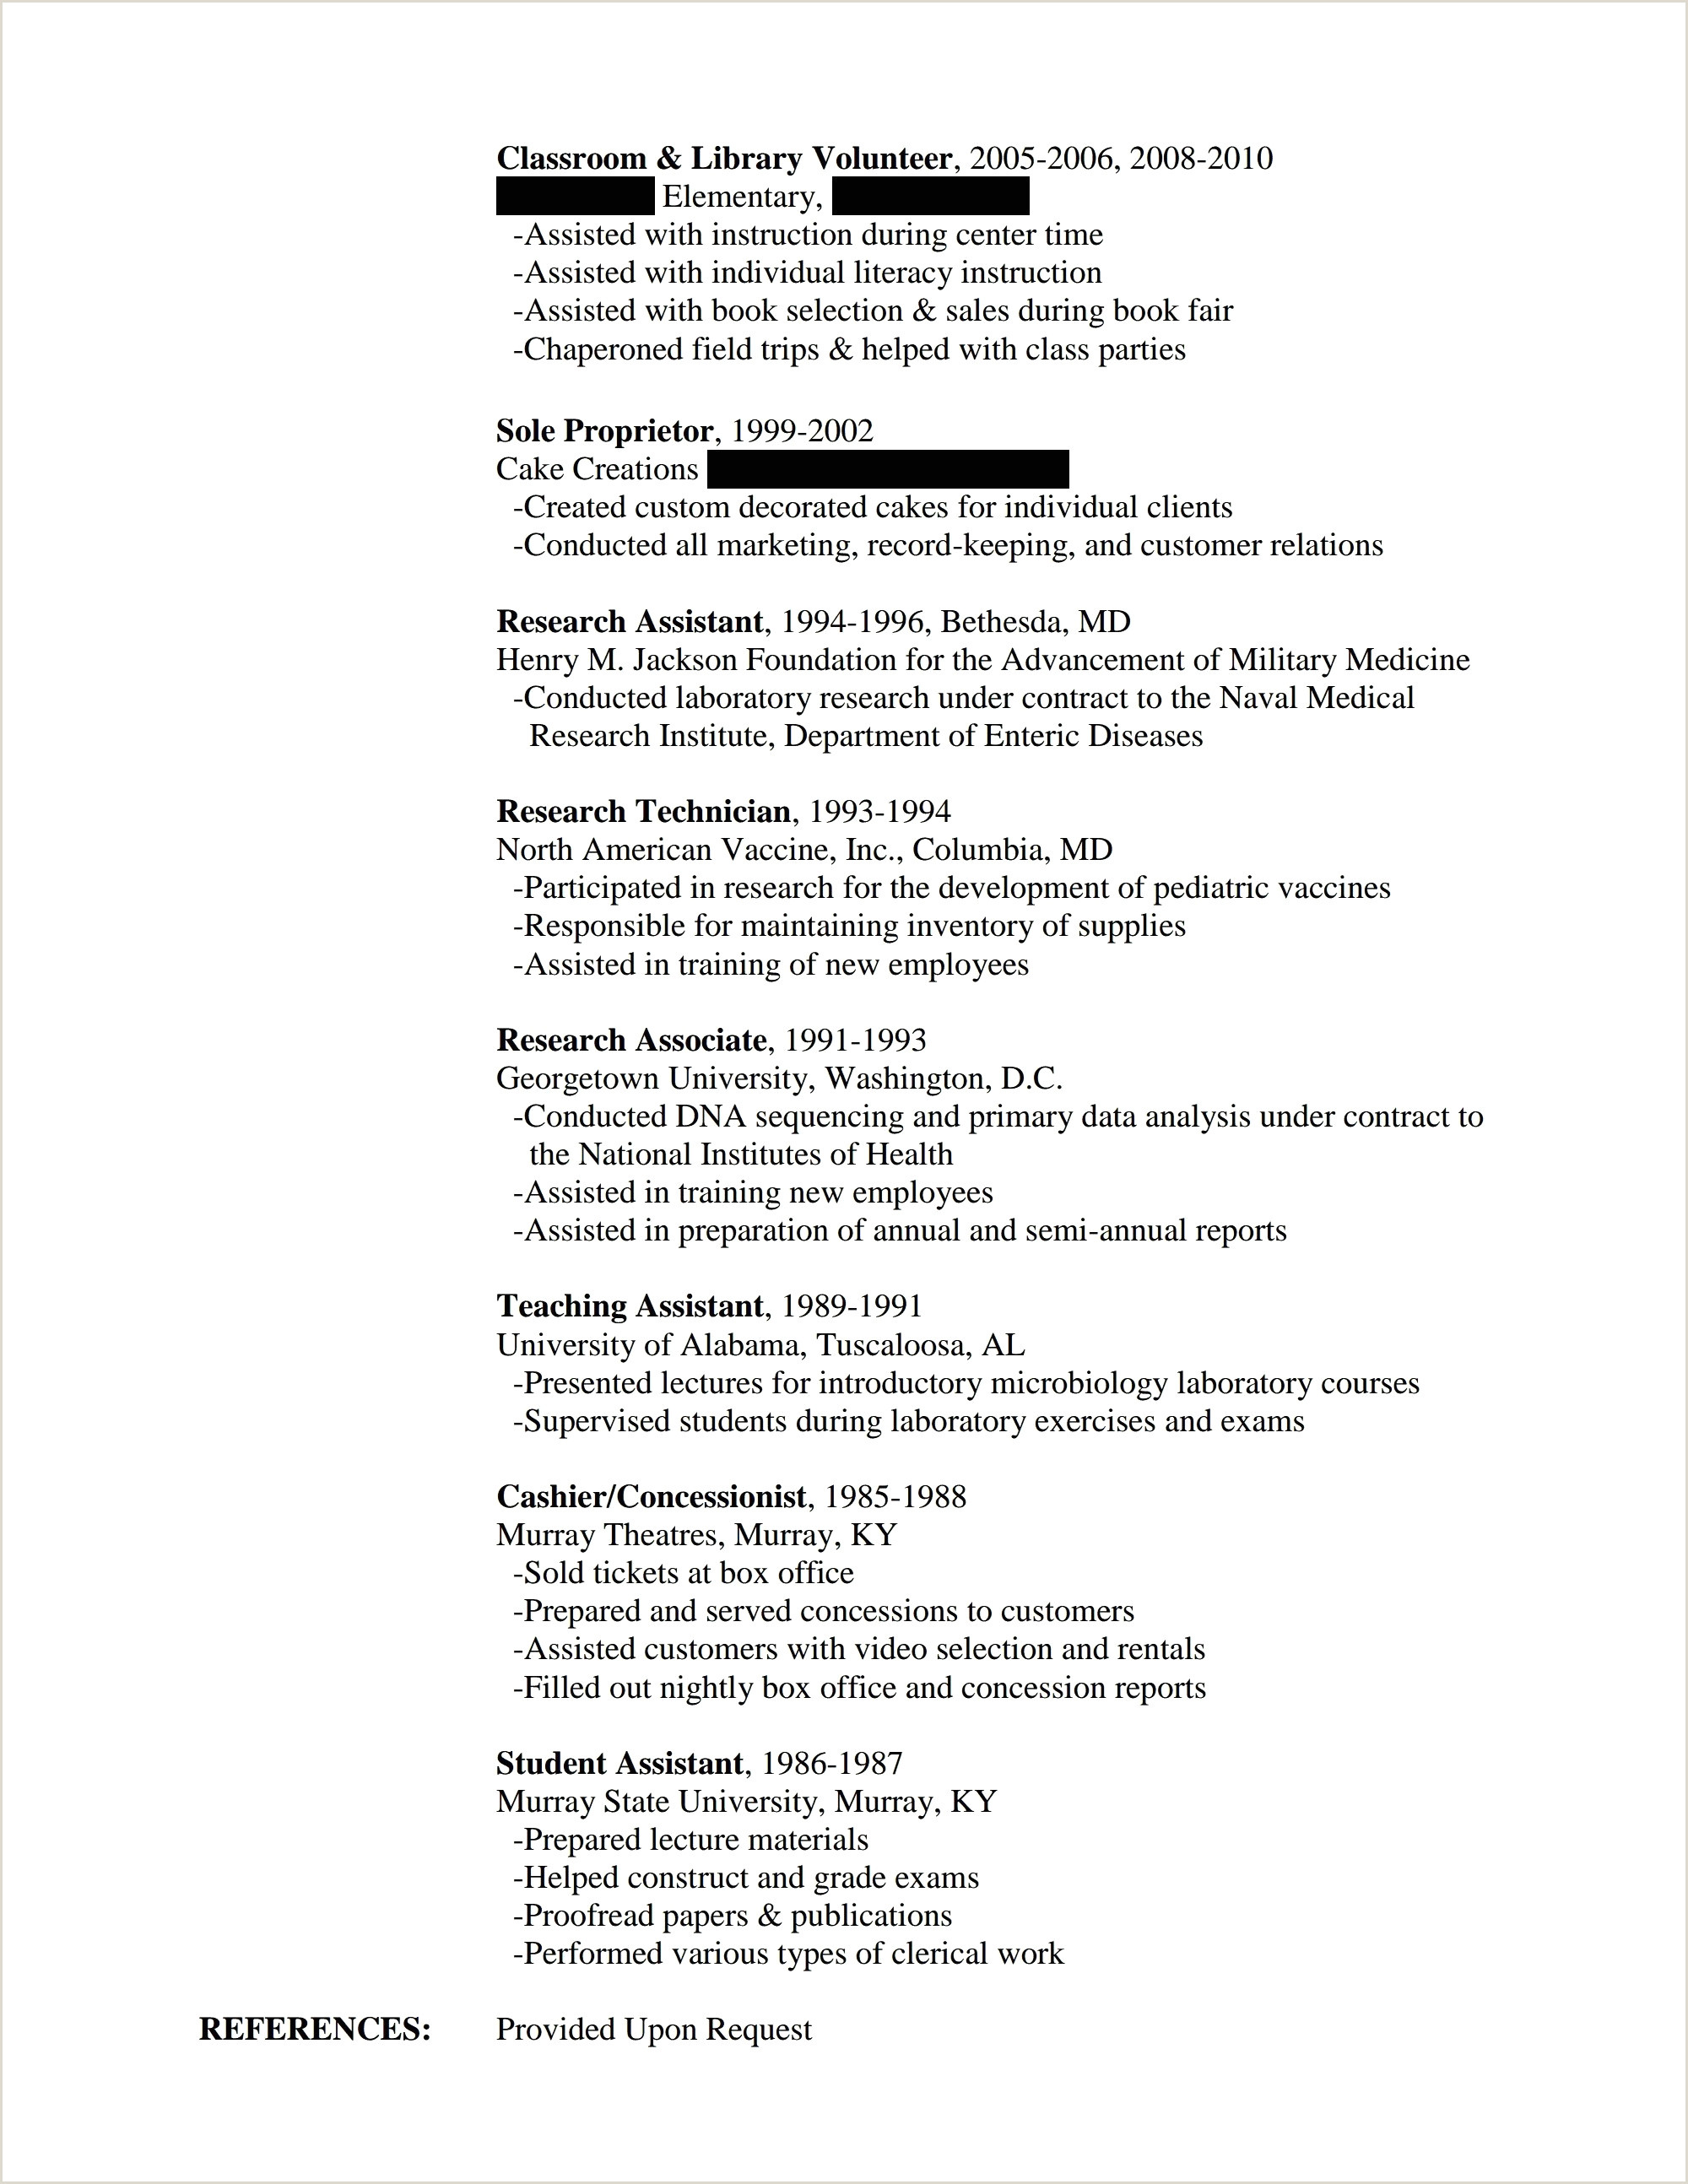 Latest Cv format for Job Application In Sri Lanka Vitae Cv Exemple Modele Cv Pages Beau Modele Cv College 3eme